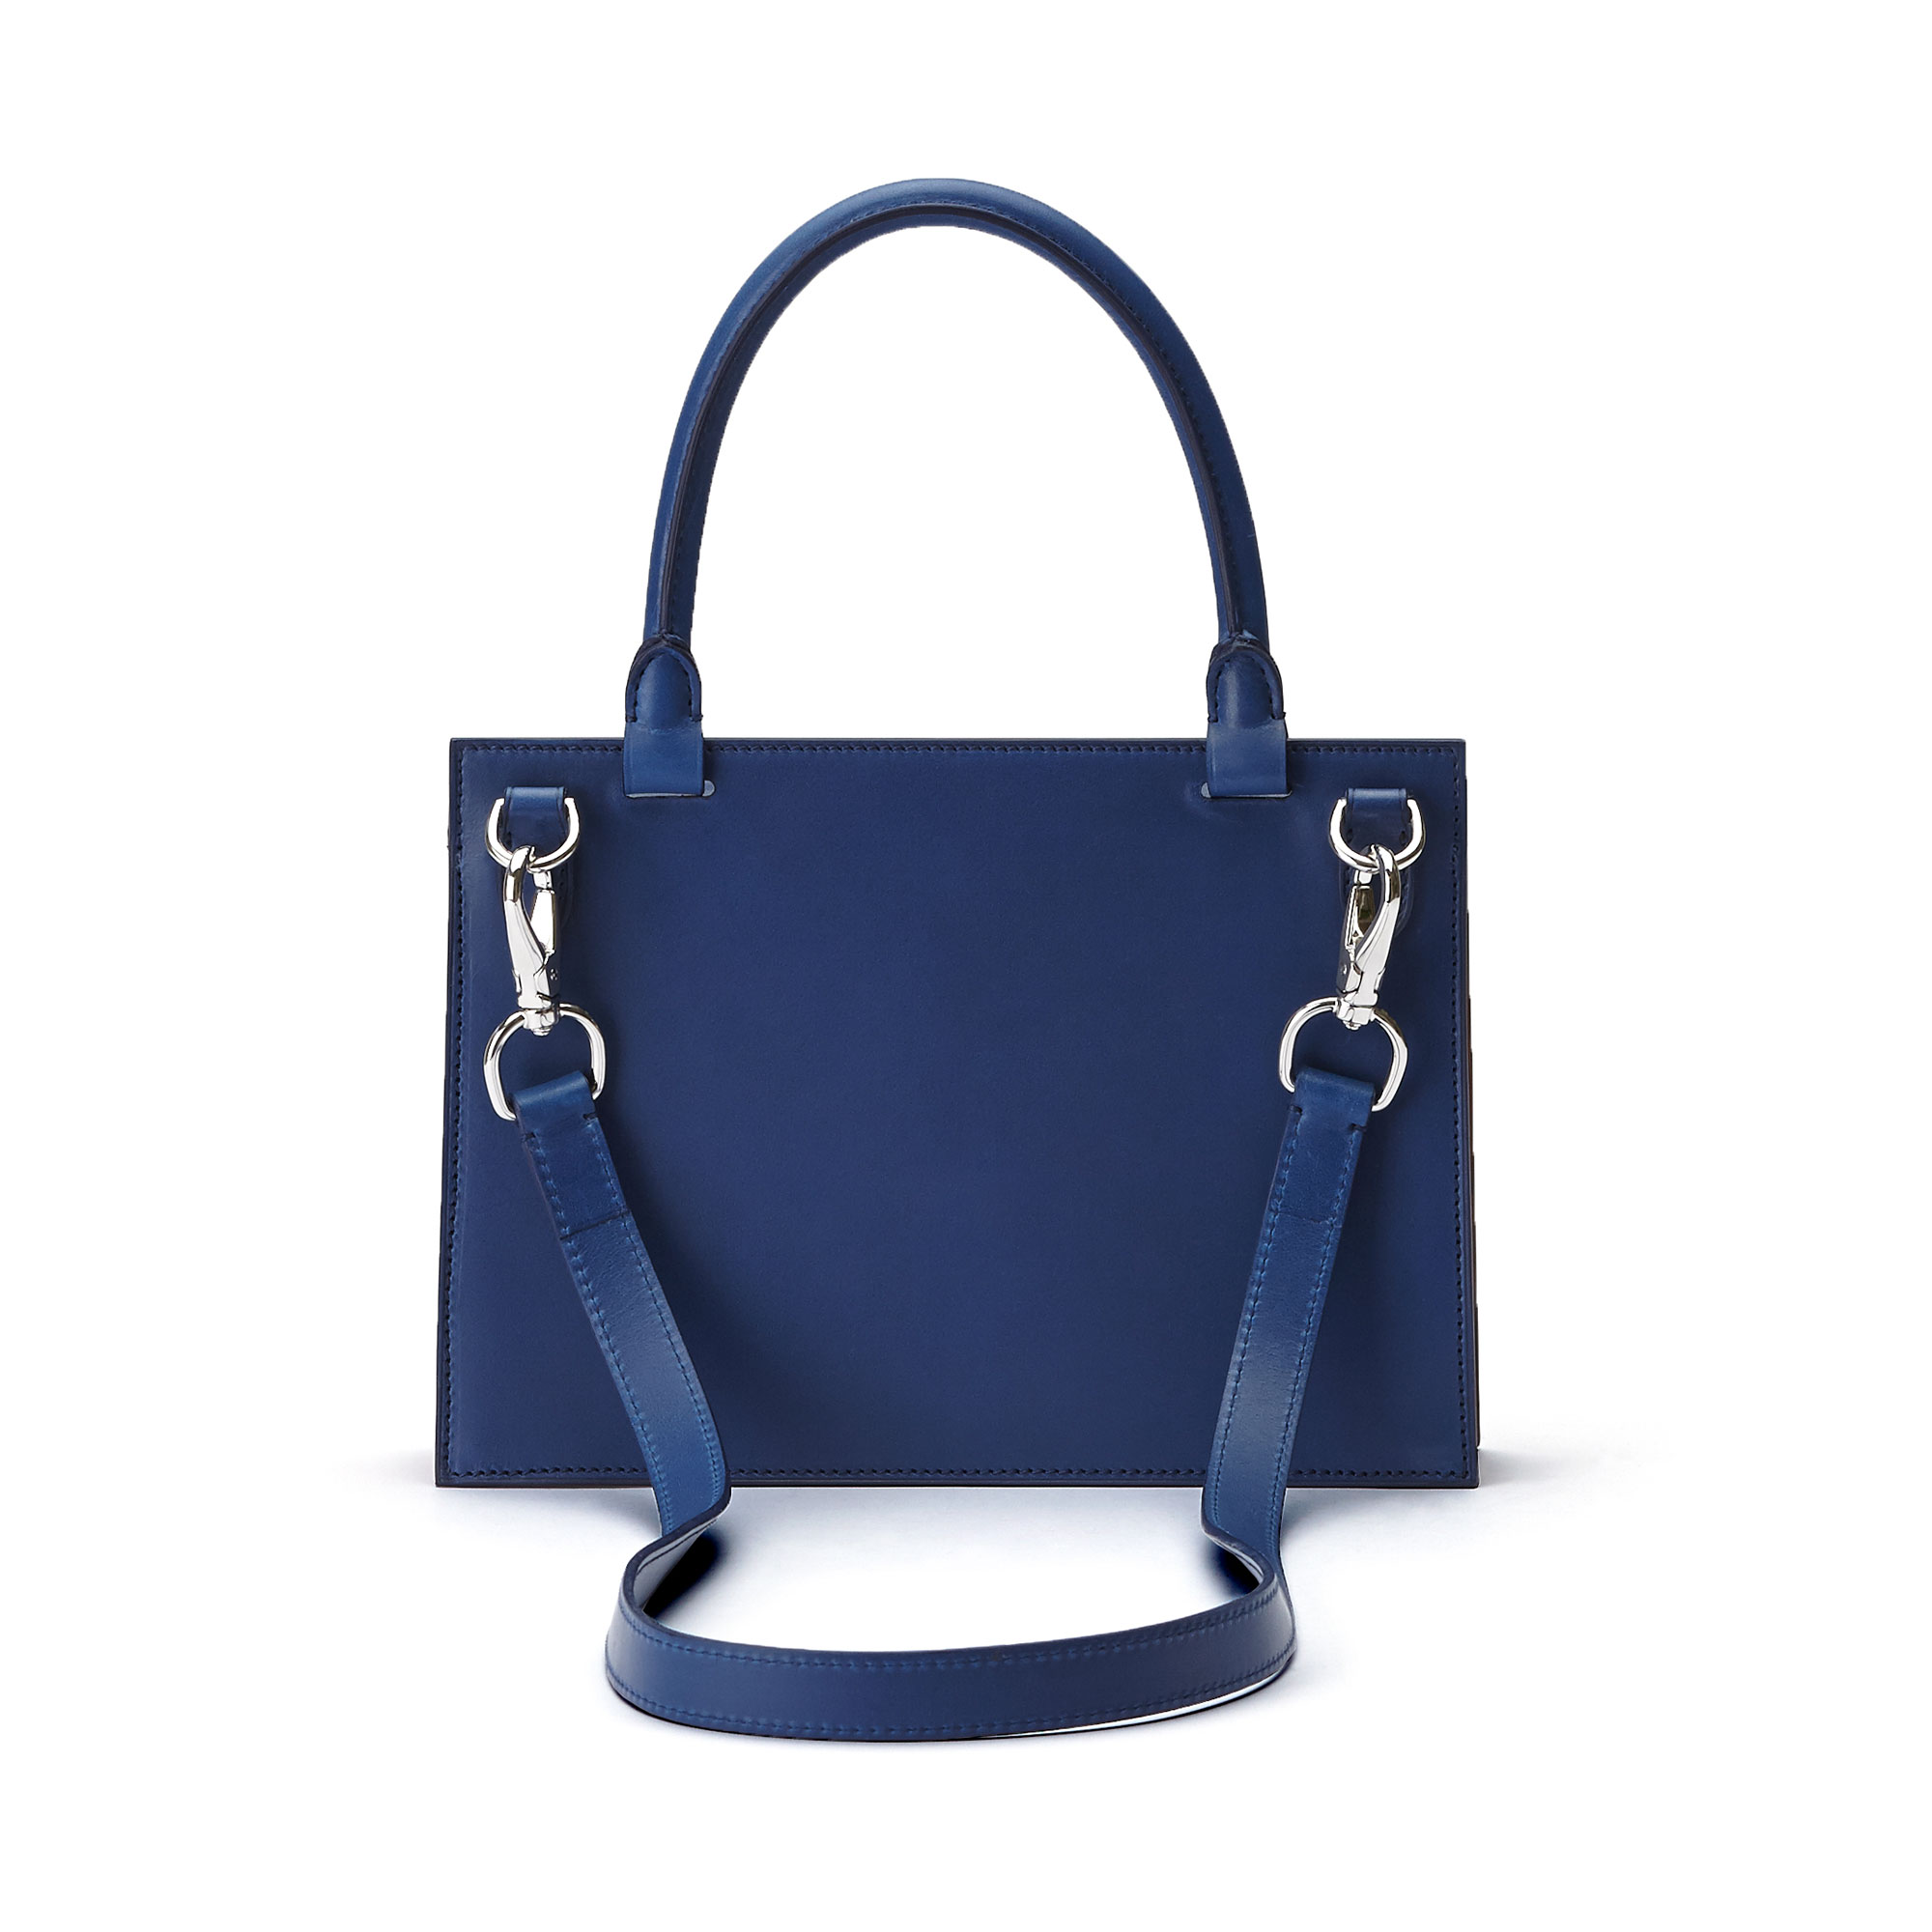 The black, blue and terrabruciata french calf Medium Dafne bag by Bertoni 1949 03